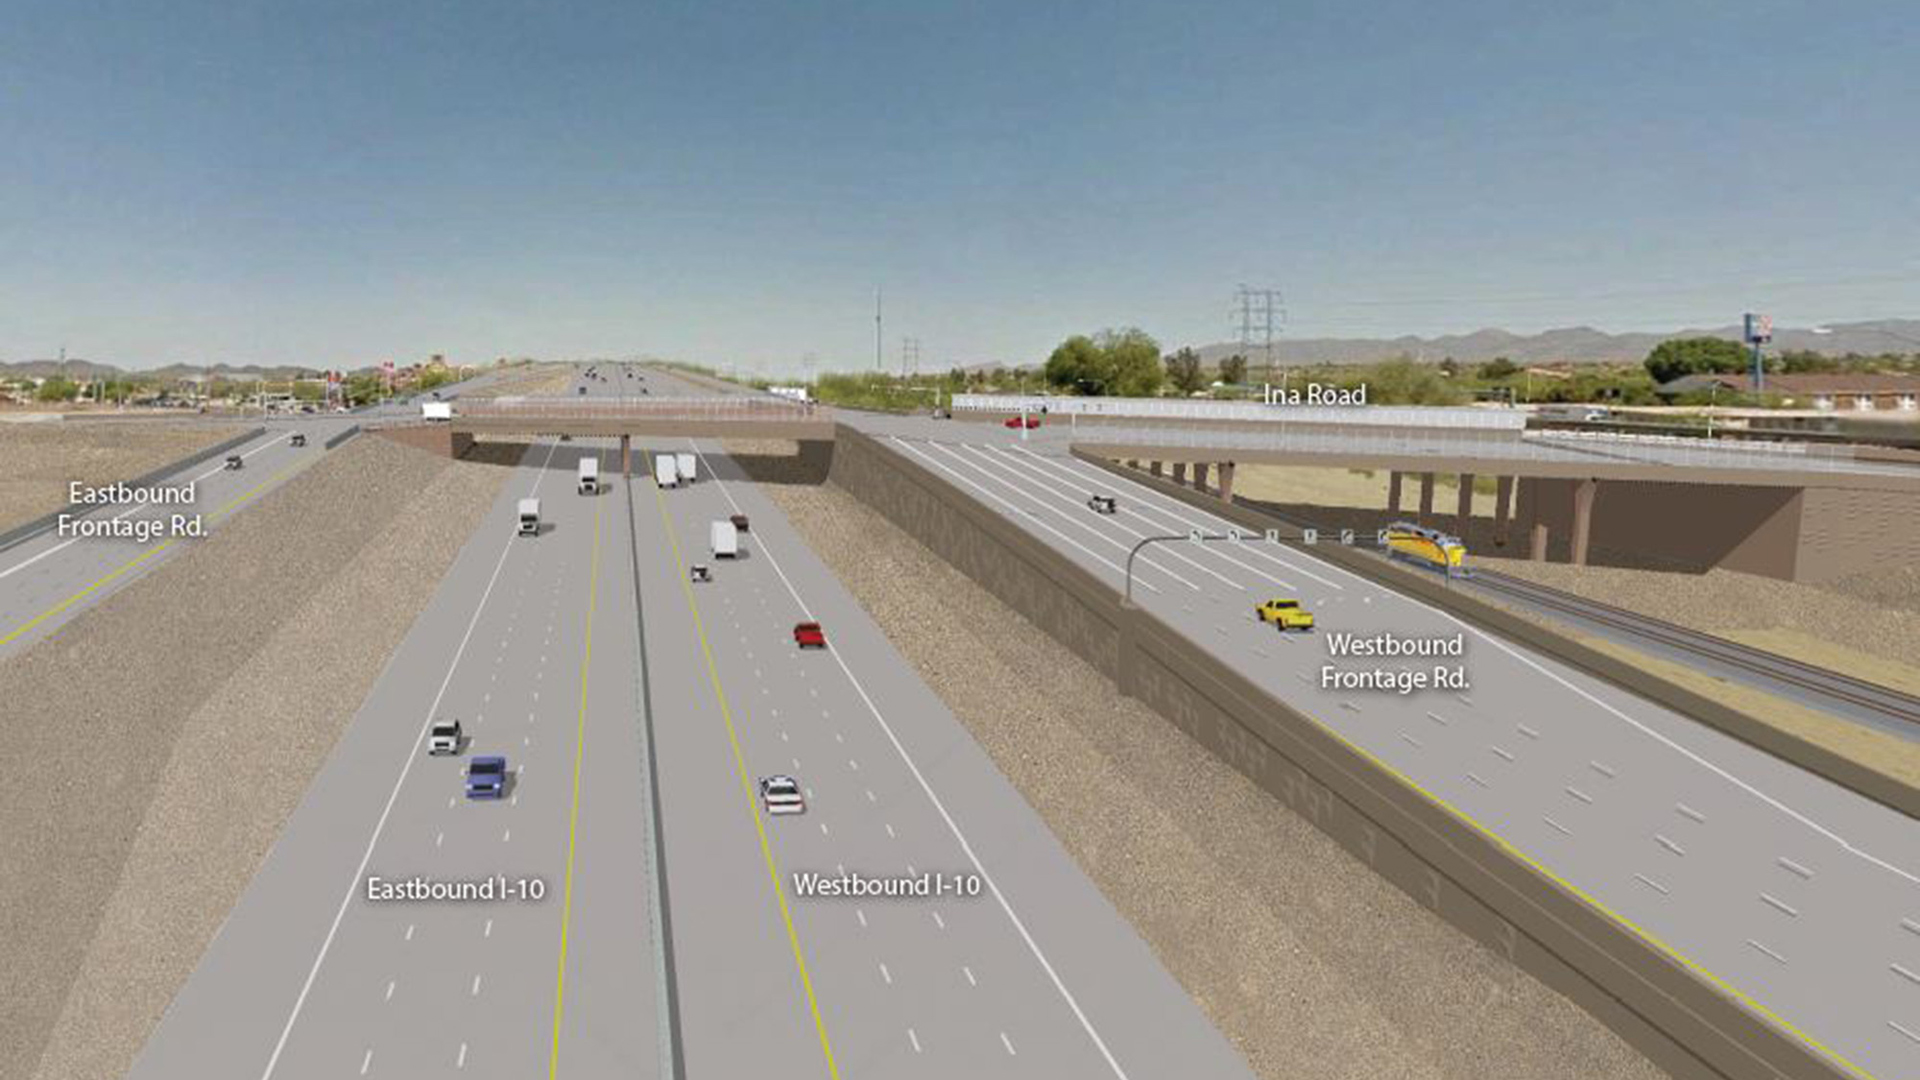 A rendering of what the new Ina Road and Interstate 10 interchange will look like when construction is complete.